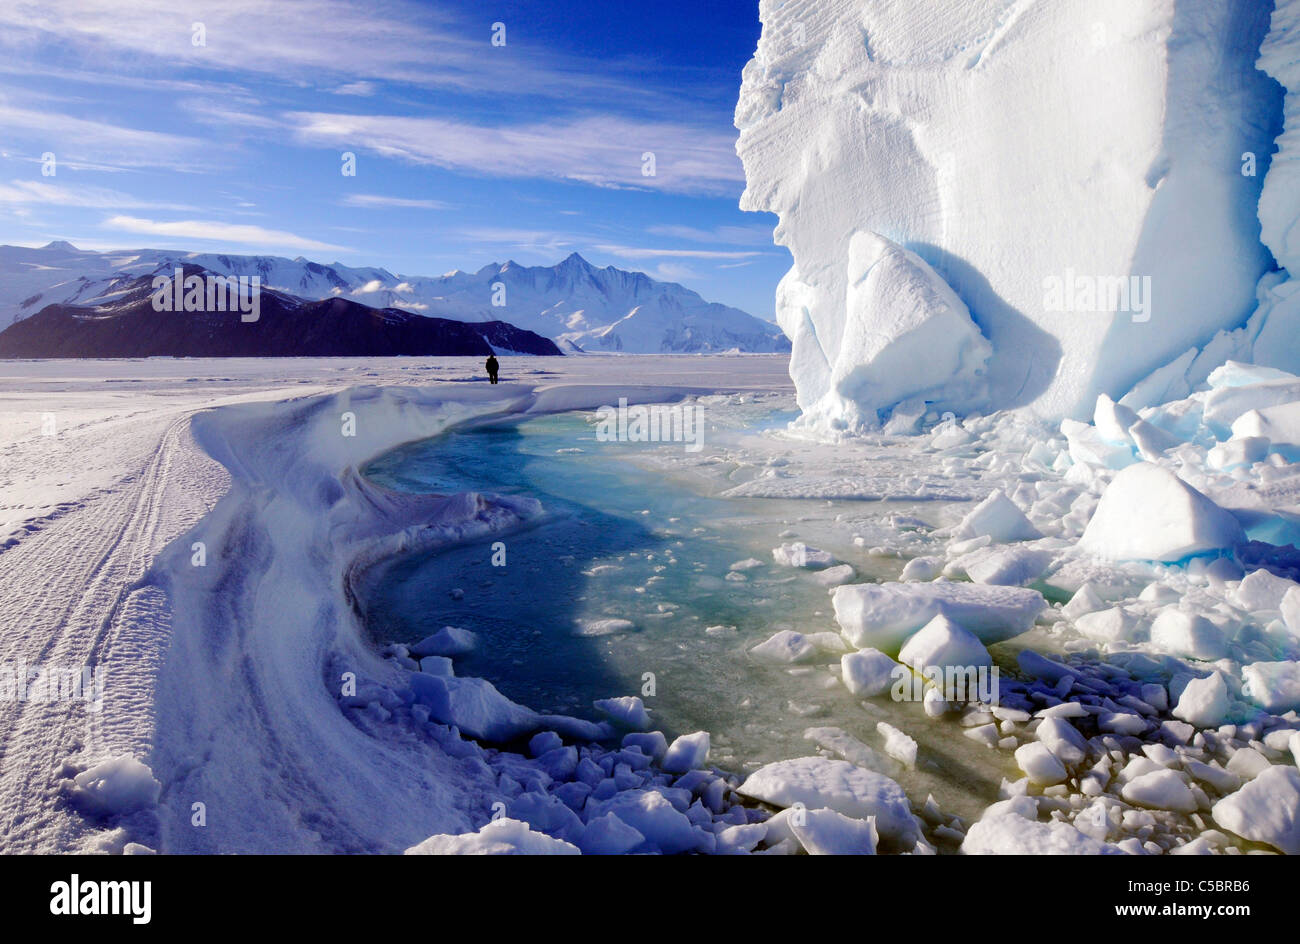 Mount Herschel with person, large ice berg and marine algae in pool near Cape Hallett northern Ross Sea Antarctica - Stock Image